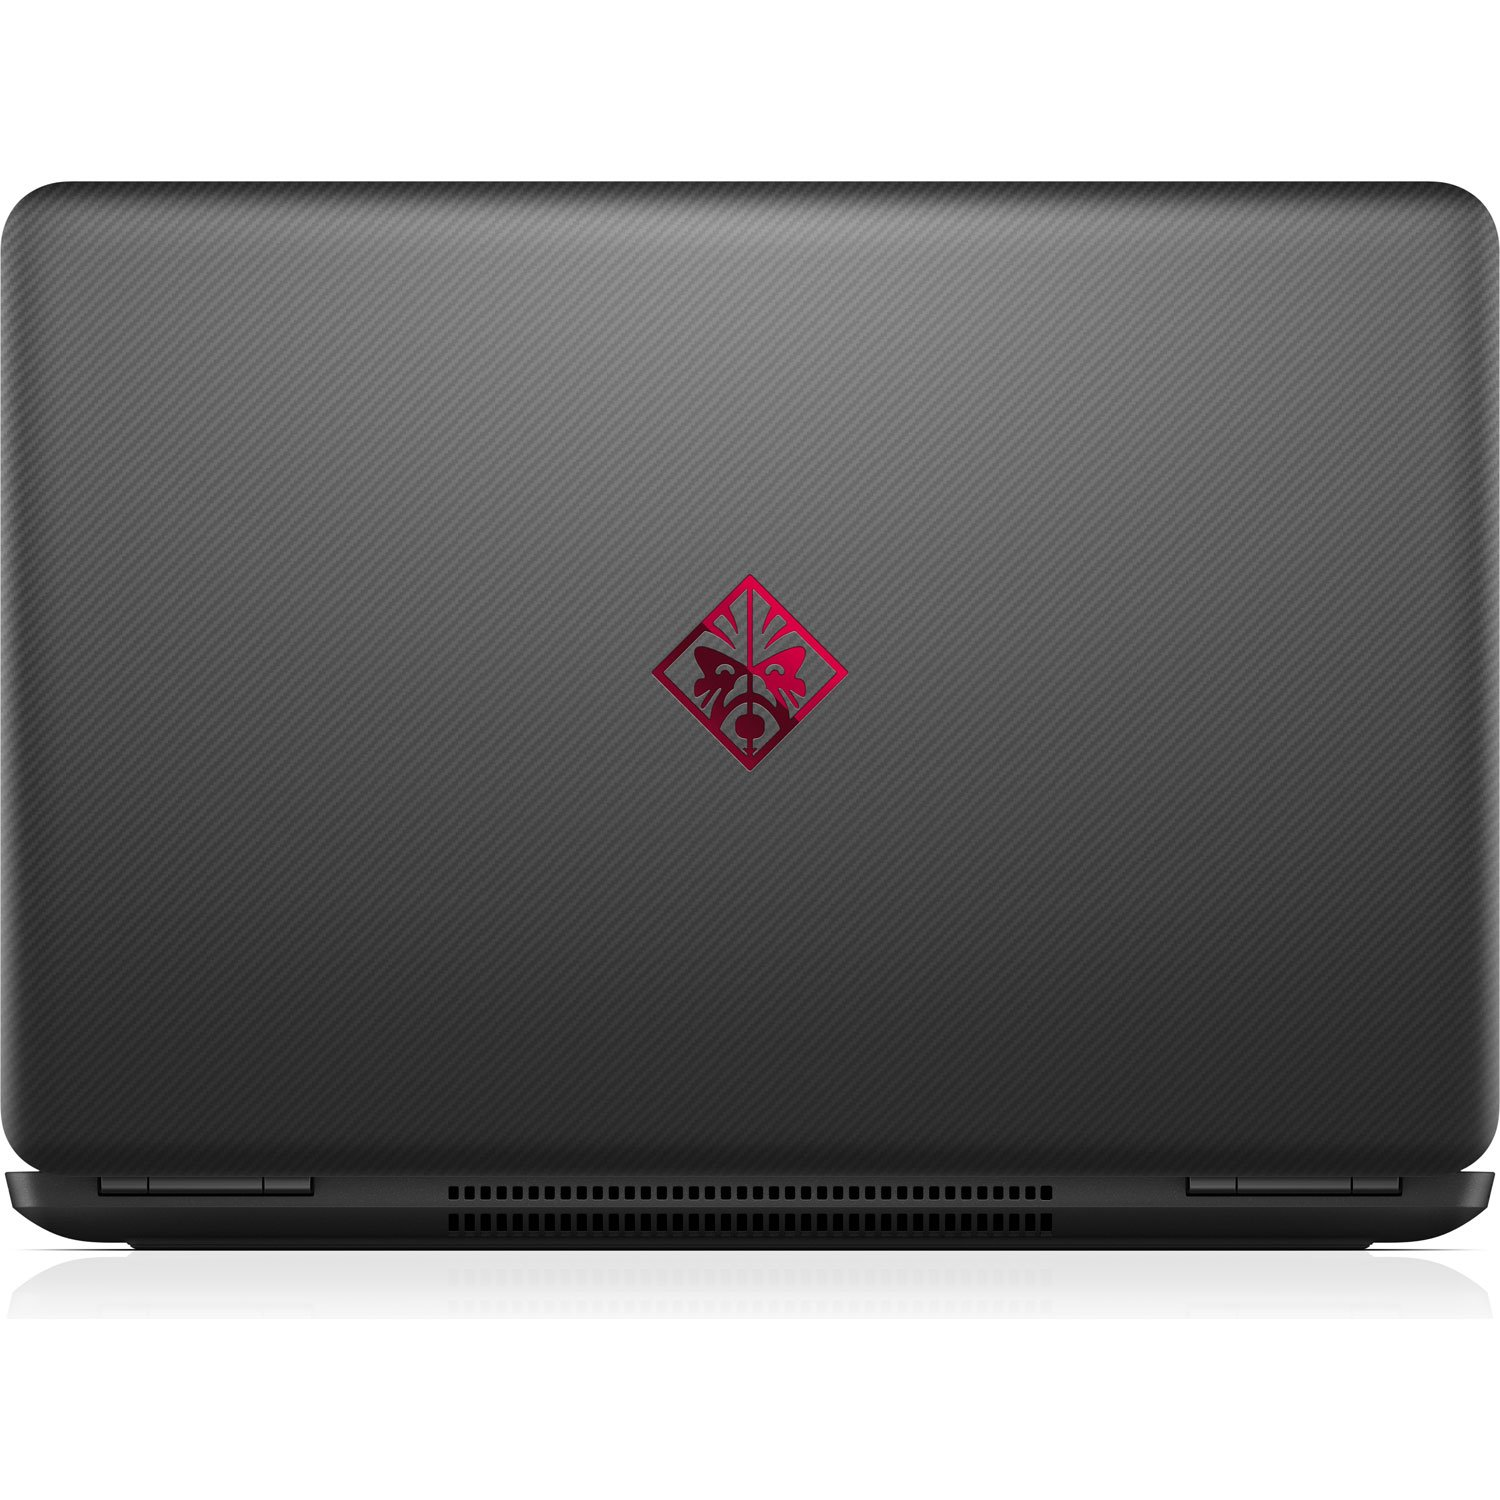 HP OMEN 15-5110NR REALTEK CARD READER VISTA